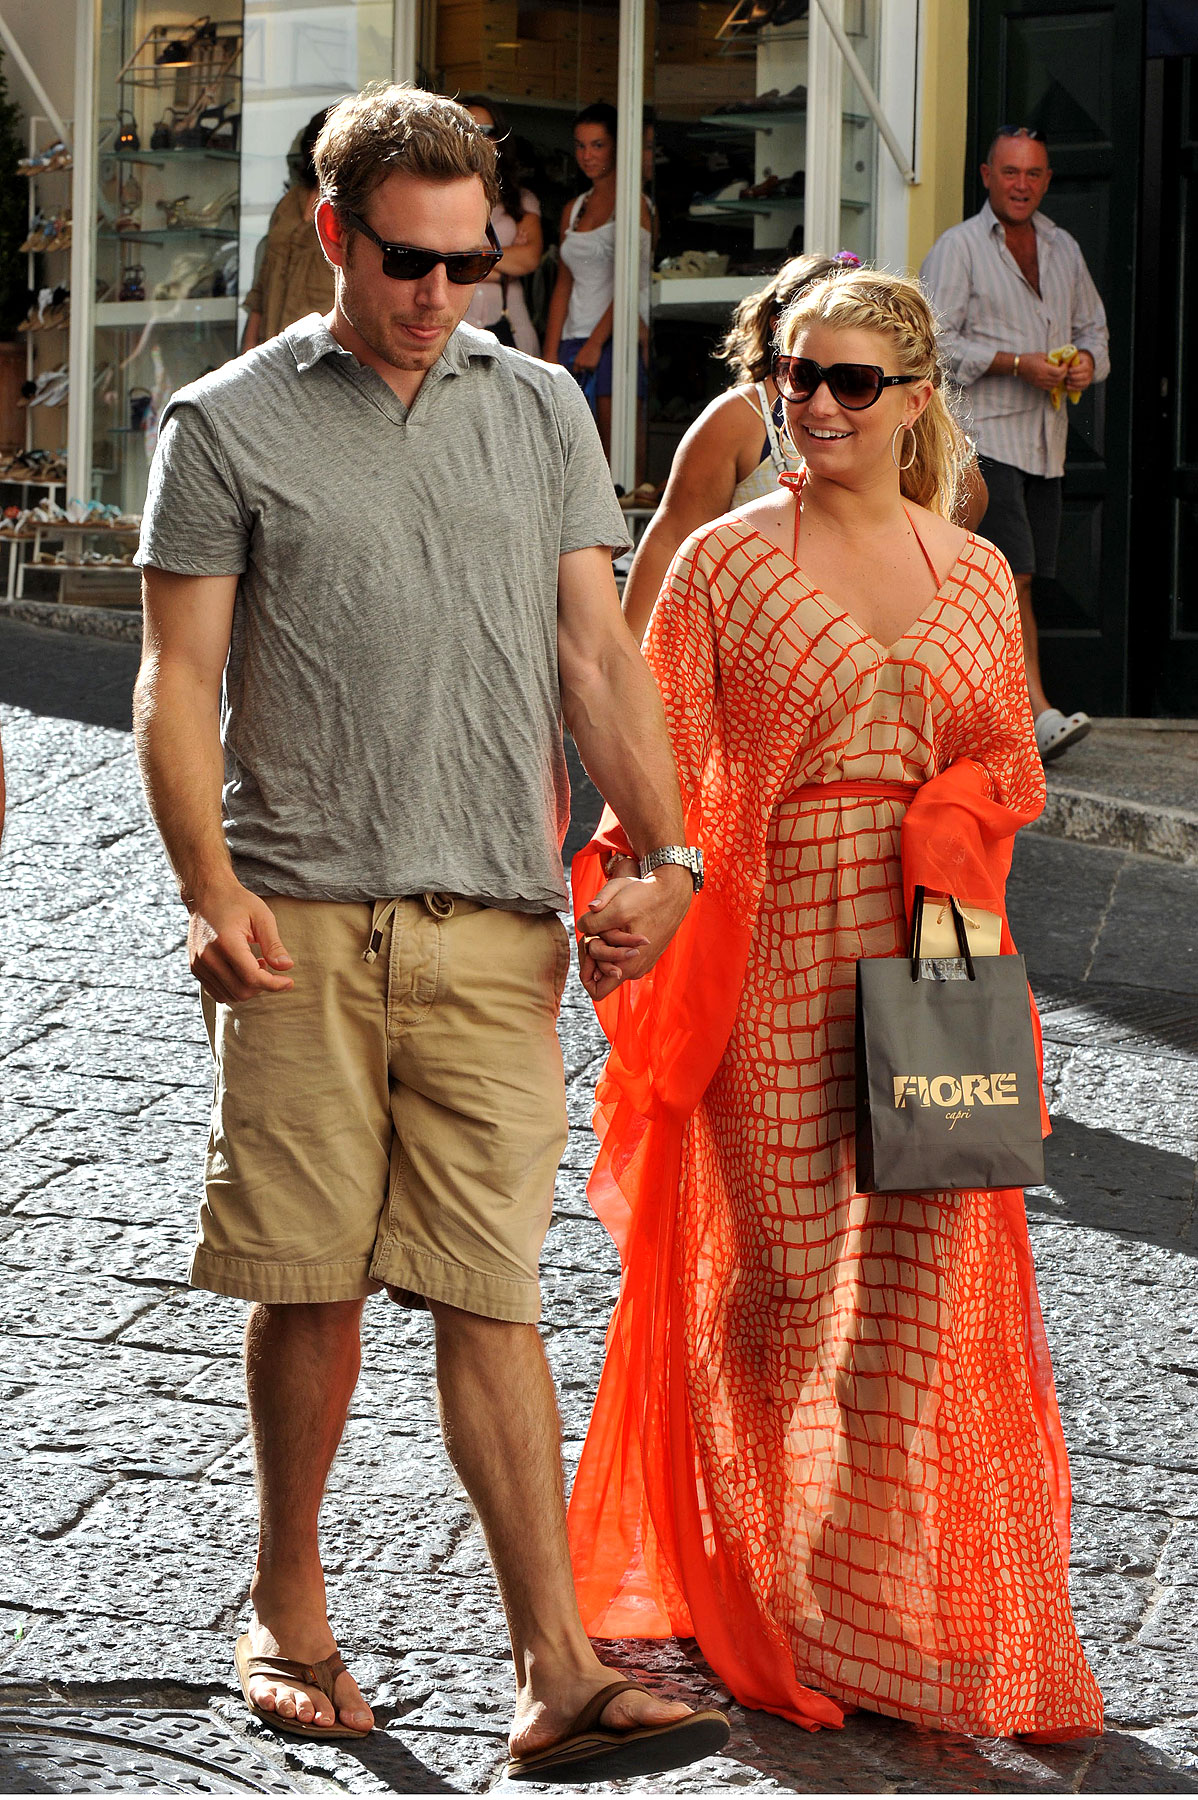 Jessica Simpson and Her New Boyfriend Do Italy (PHOTOS)